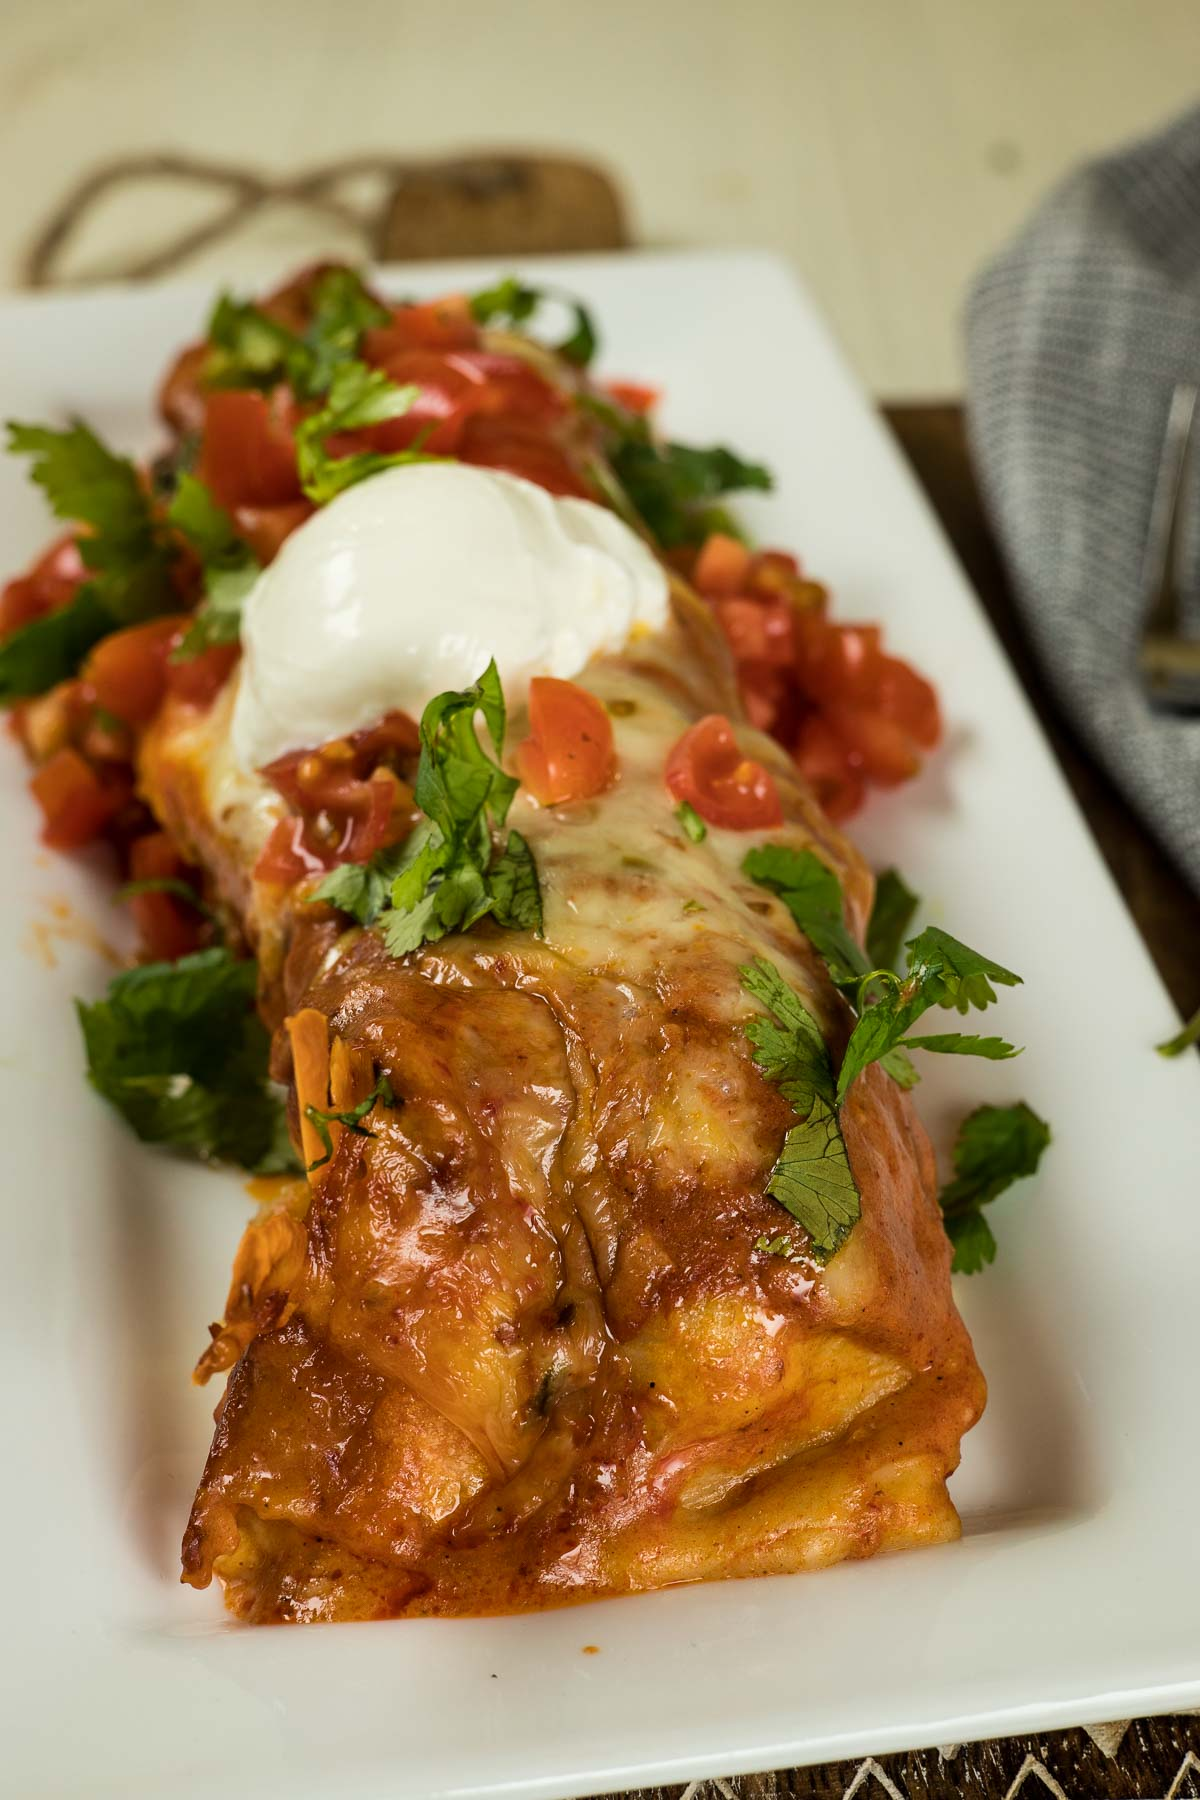 Beef enchilada with sour cream, tomatoes, and cilatnro.